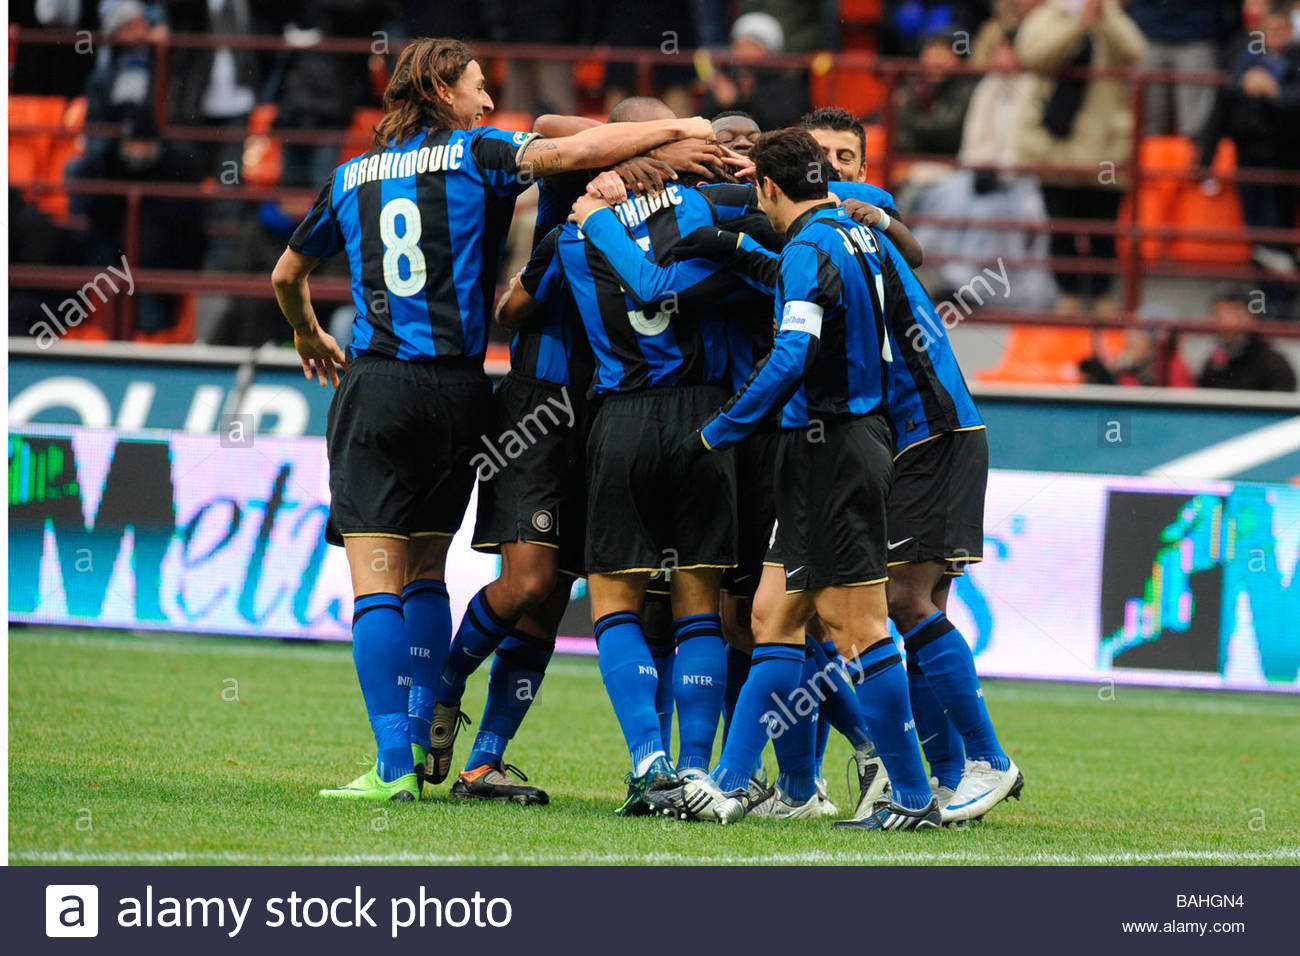 inter players celebrating'milano 14 12 2008 'serie a football championship 2008/2009 'inter-chievo 4-2 'photo paolo - Stock Image